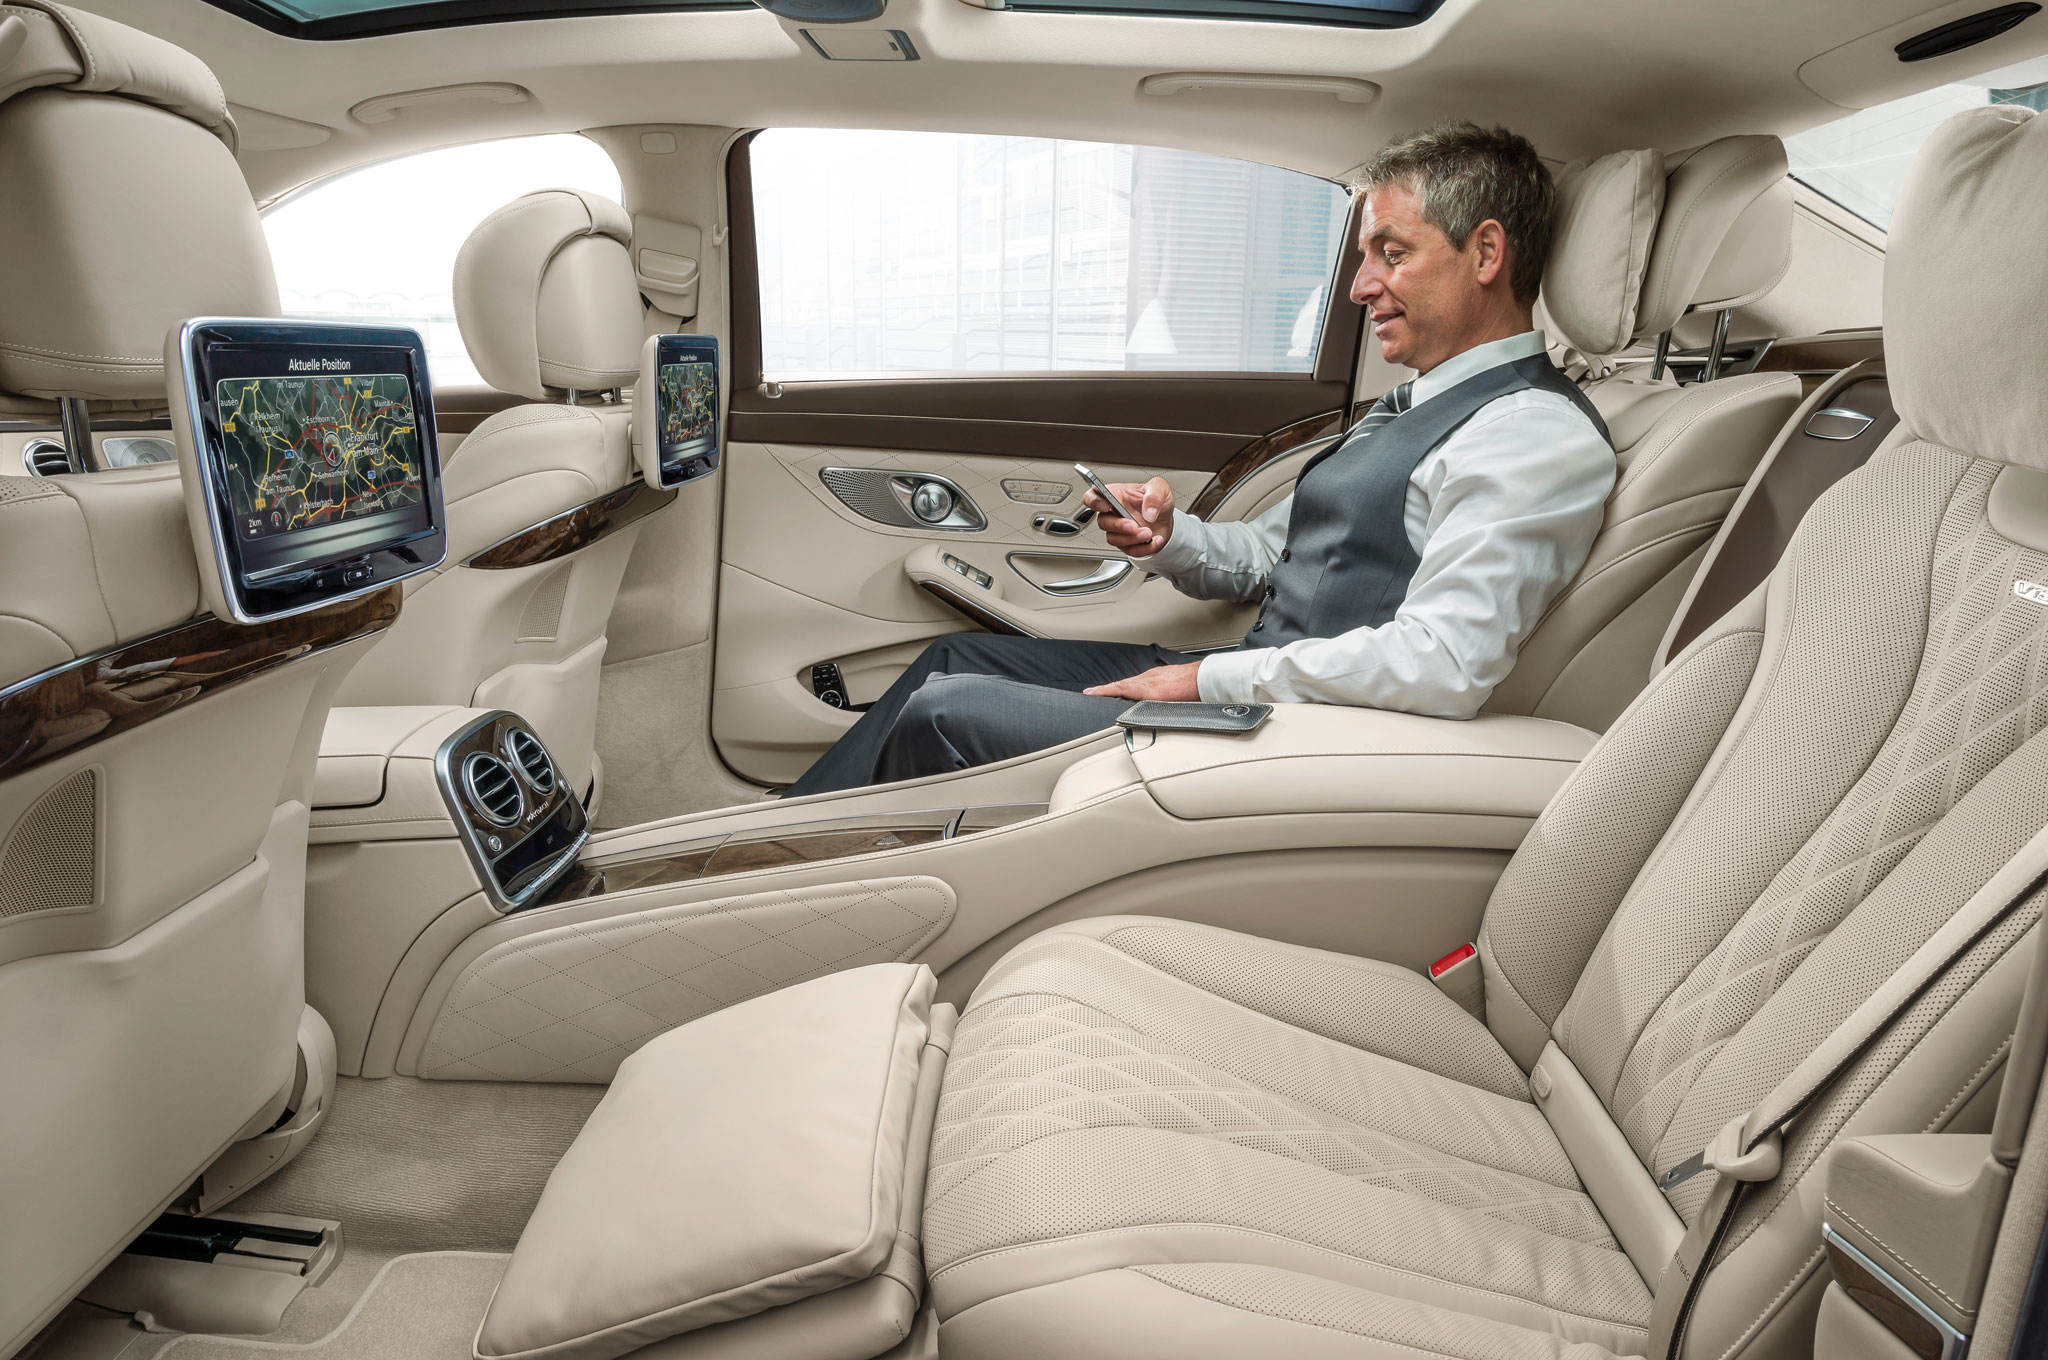 2016-Mercedes-Maybach-S600-rear-seats-with-person-2